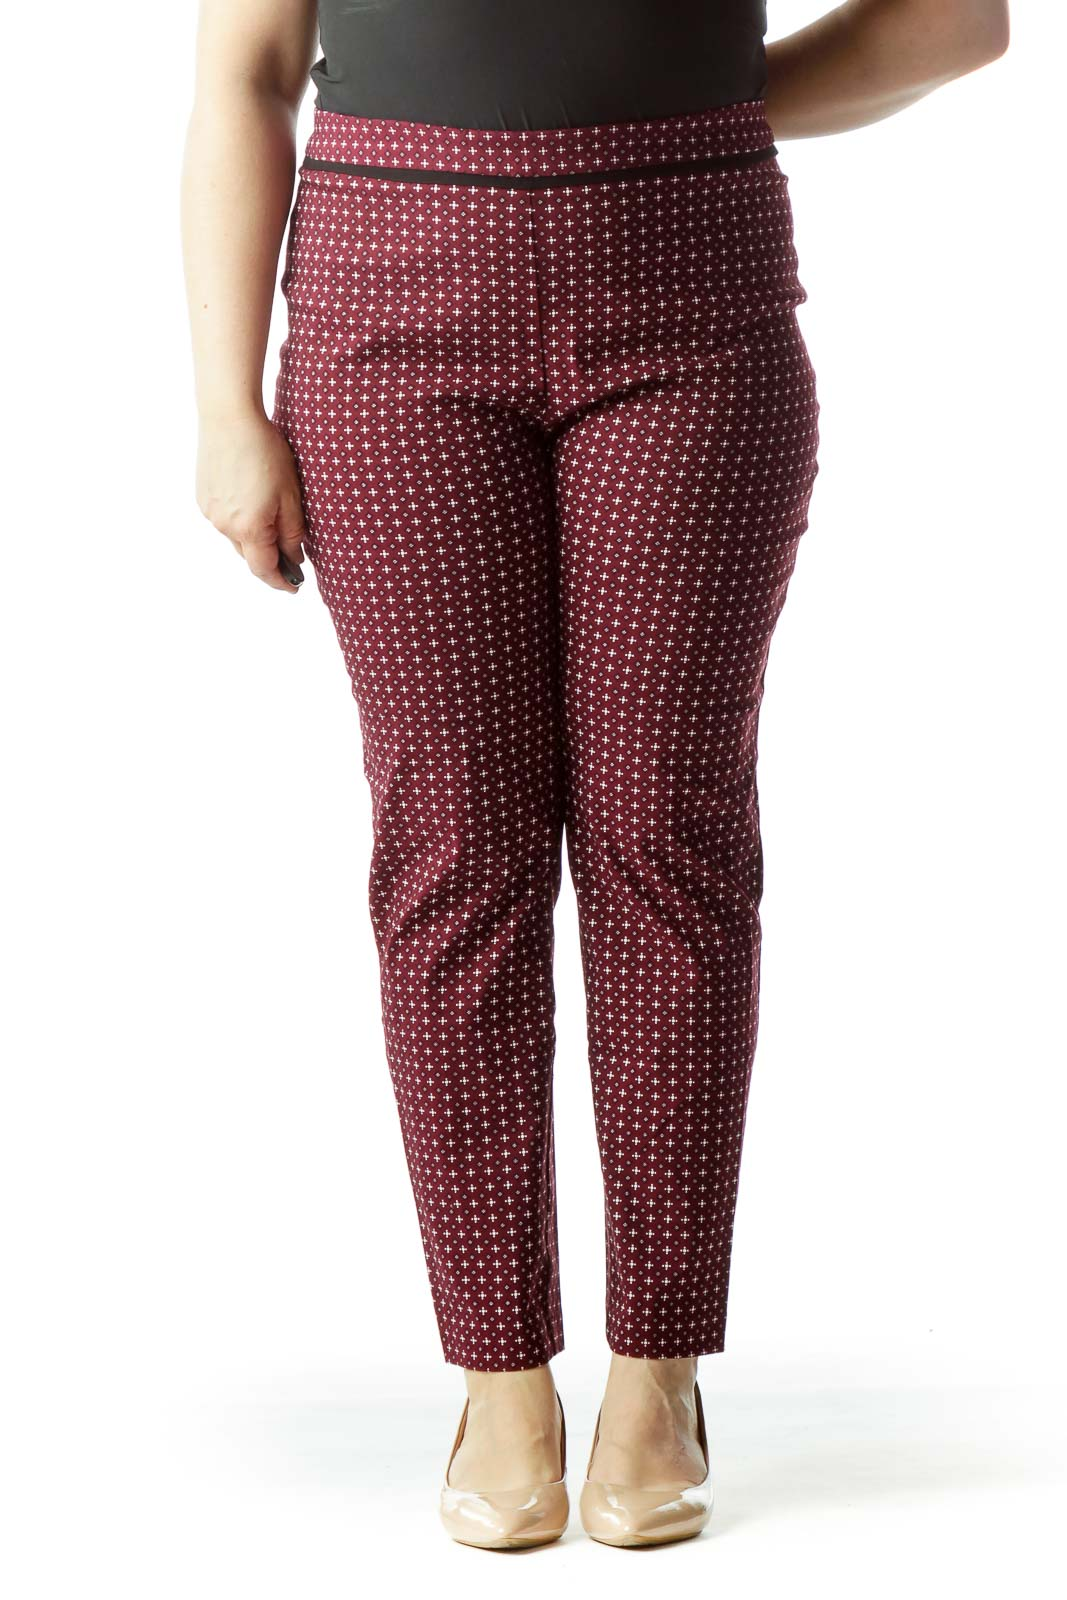 Burgundy Black White Print Stretch Pants Front